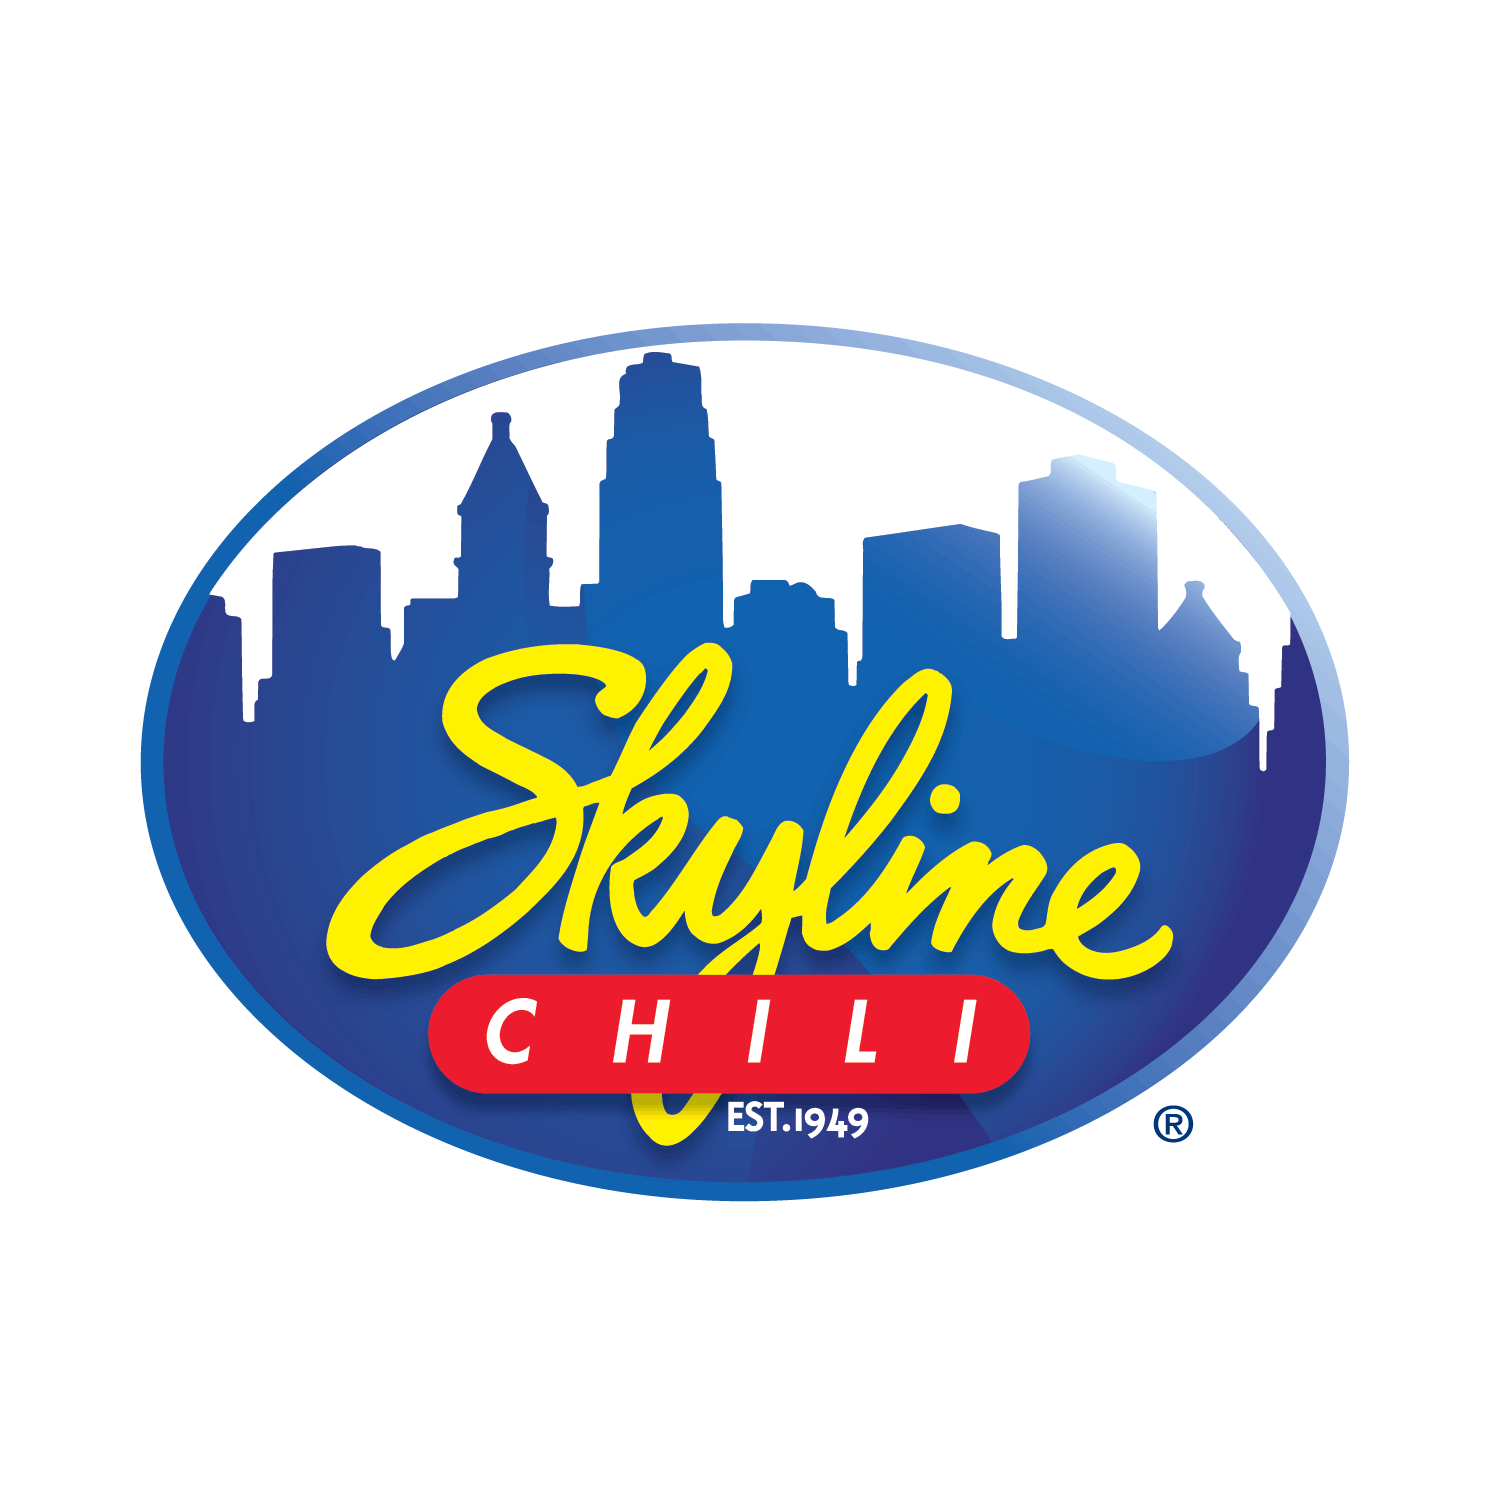 Skyline Chili image 3